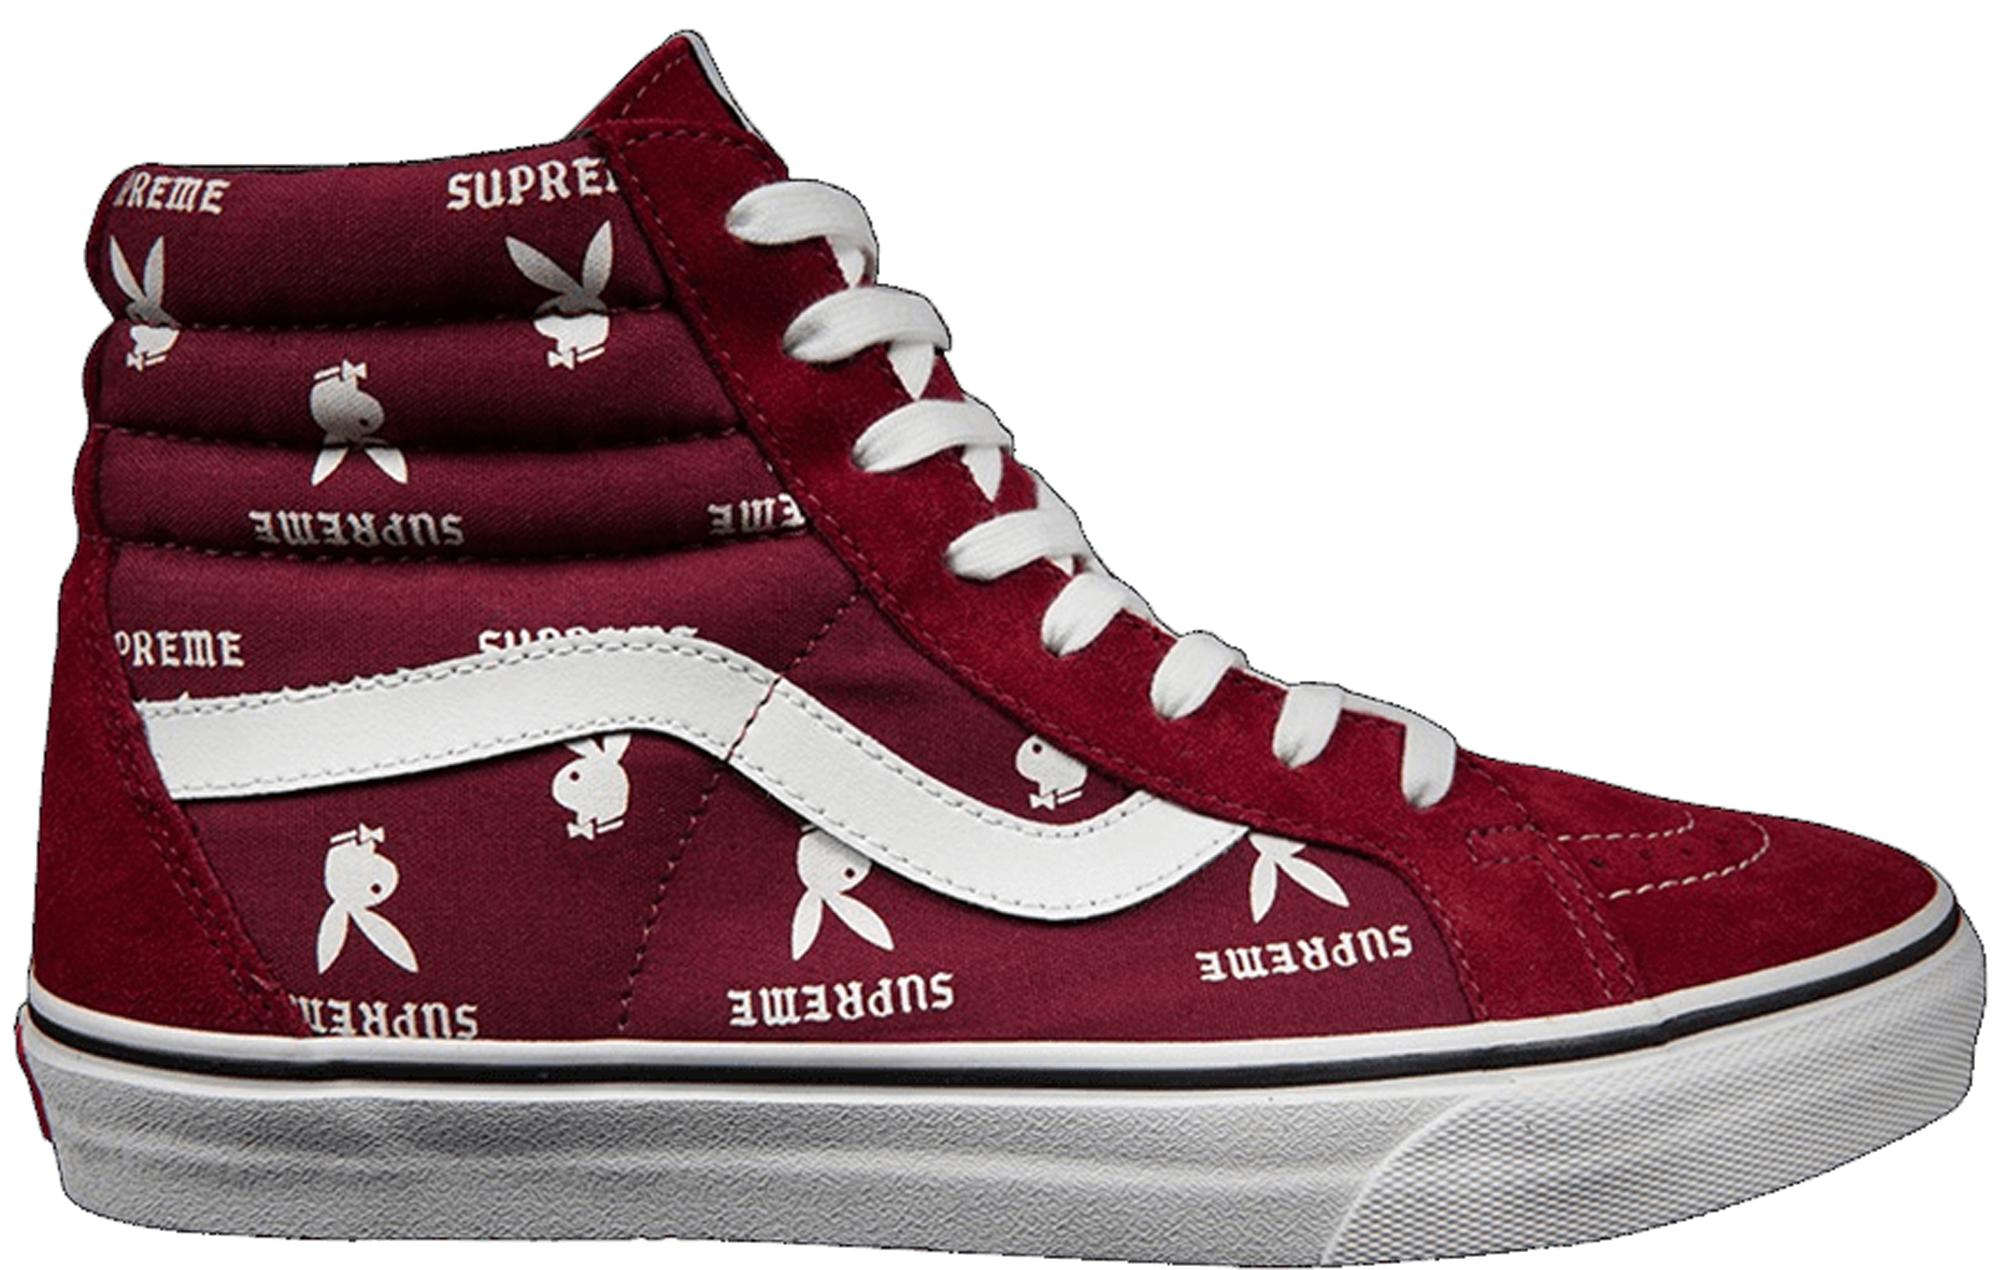 59bbf1434f Lyst - Vans Sk8-hi Supreme X Playboy Burgundy in Red for Men